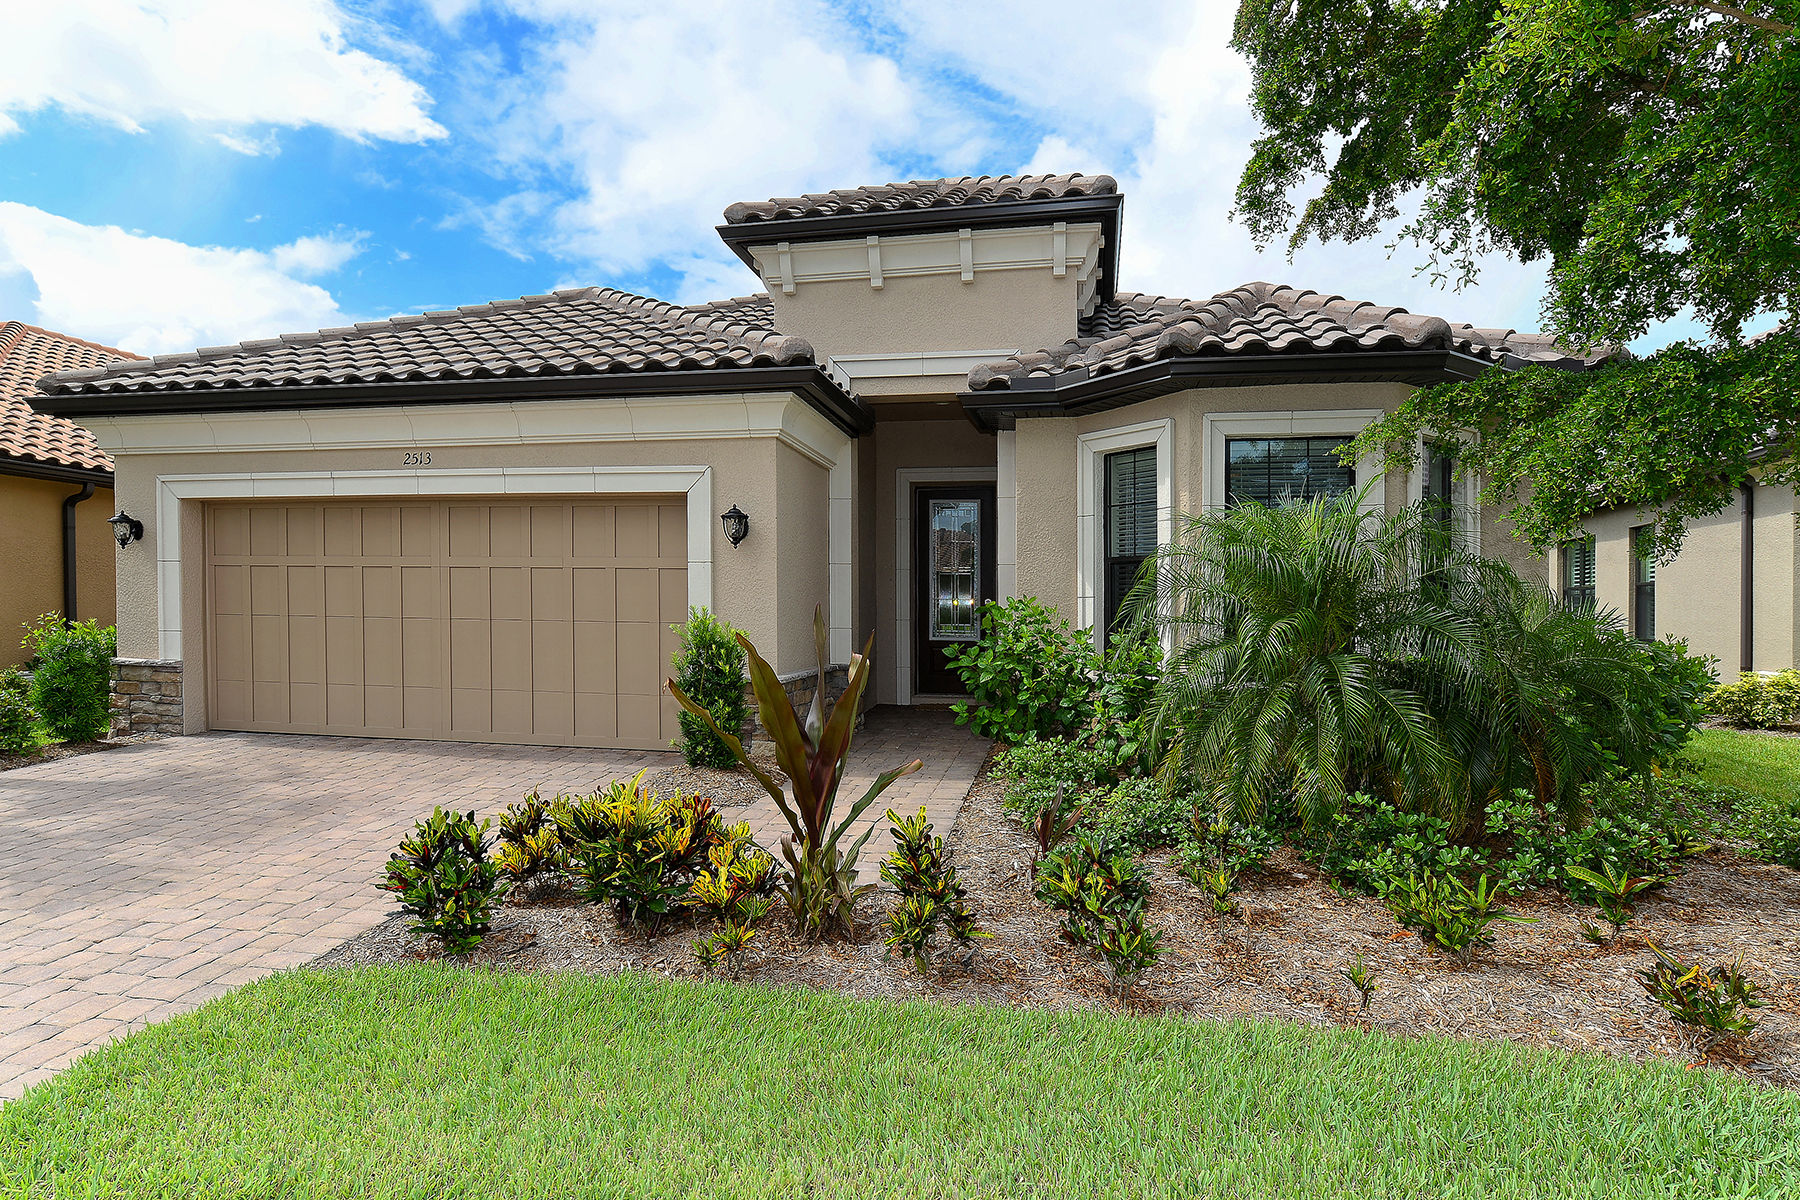 Single Family Home for Sale at ESPLANADE BY SIESTA KEY 2513 Vaccaro Dr Sarasota, Florida, 34231 United States